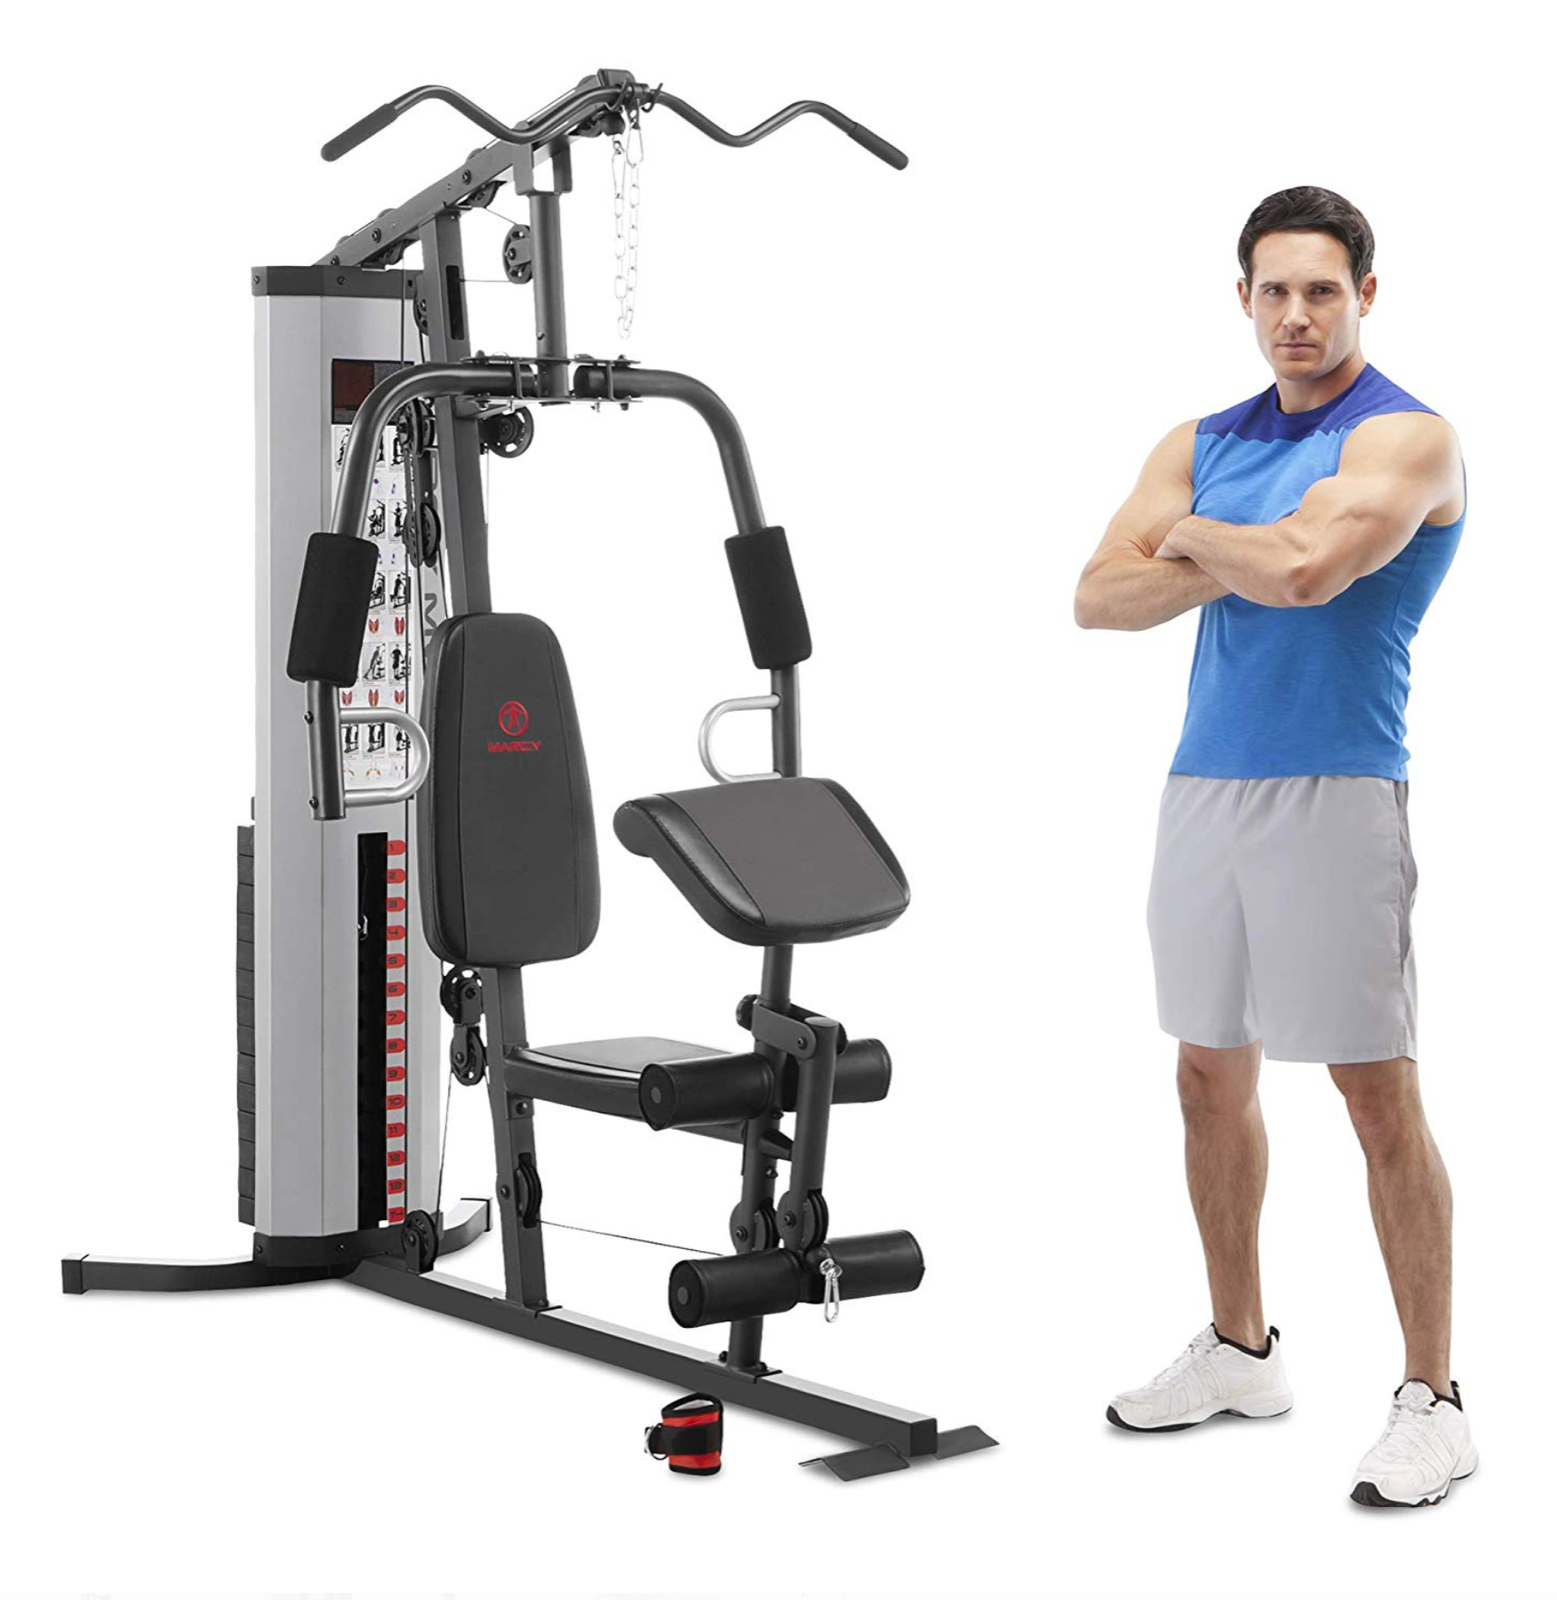 Marcy Pro MWM-988 Gym System 150 lbs Adjustable Weight Stack - Ready to Ship